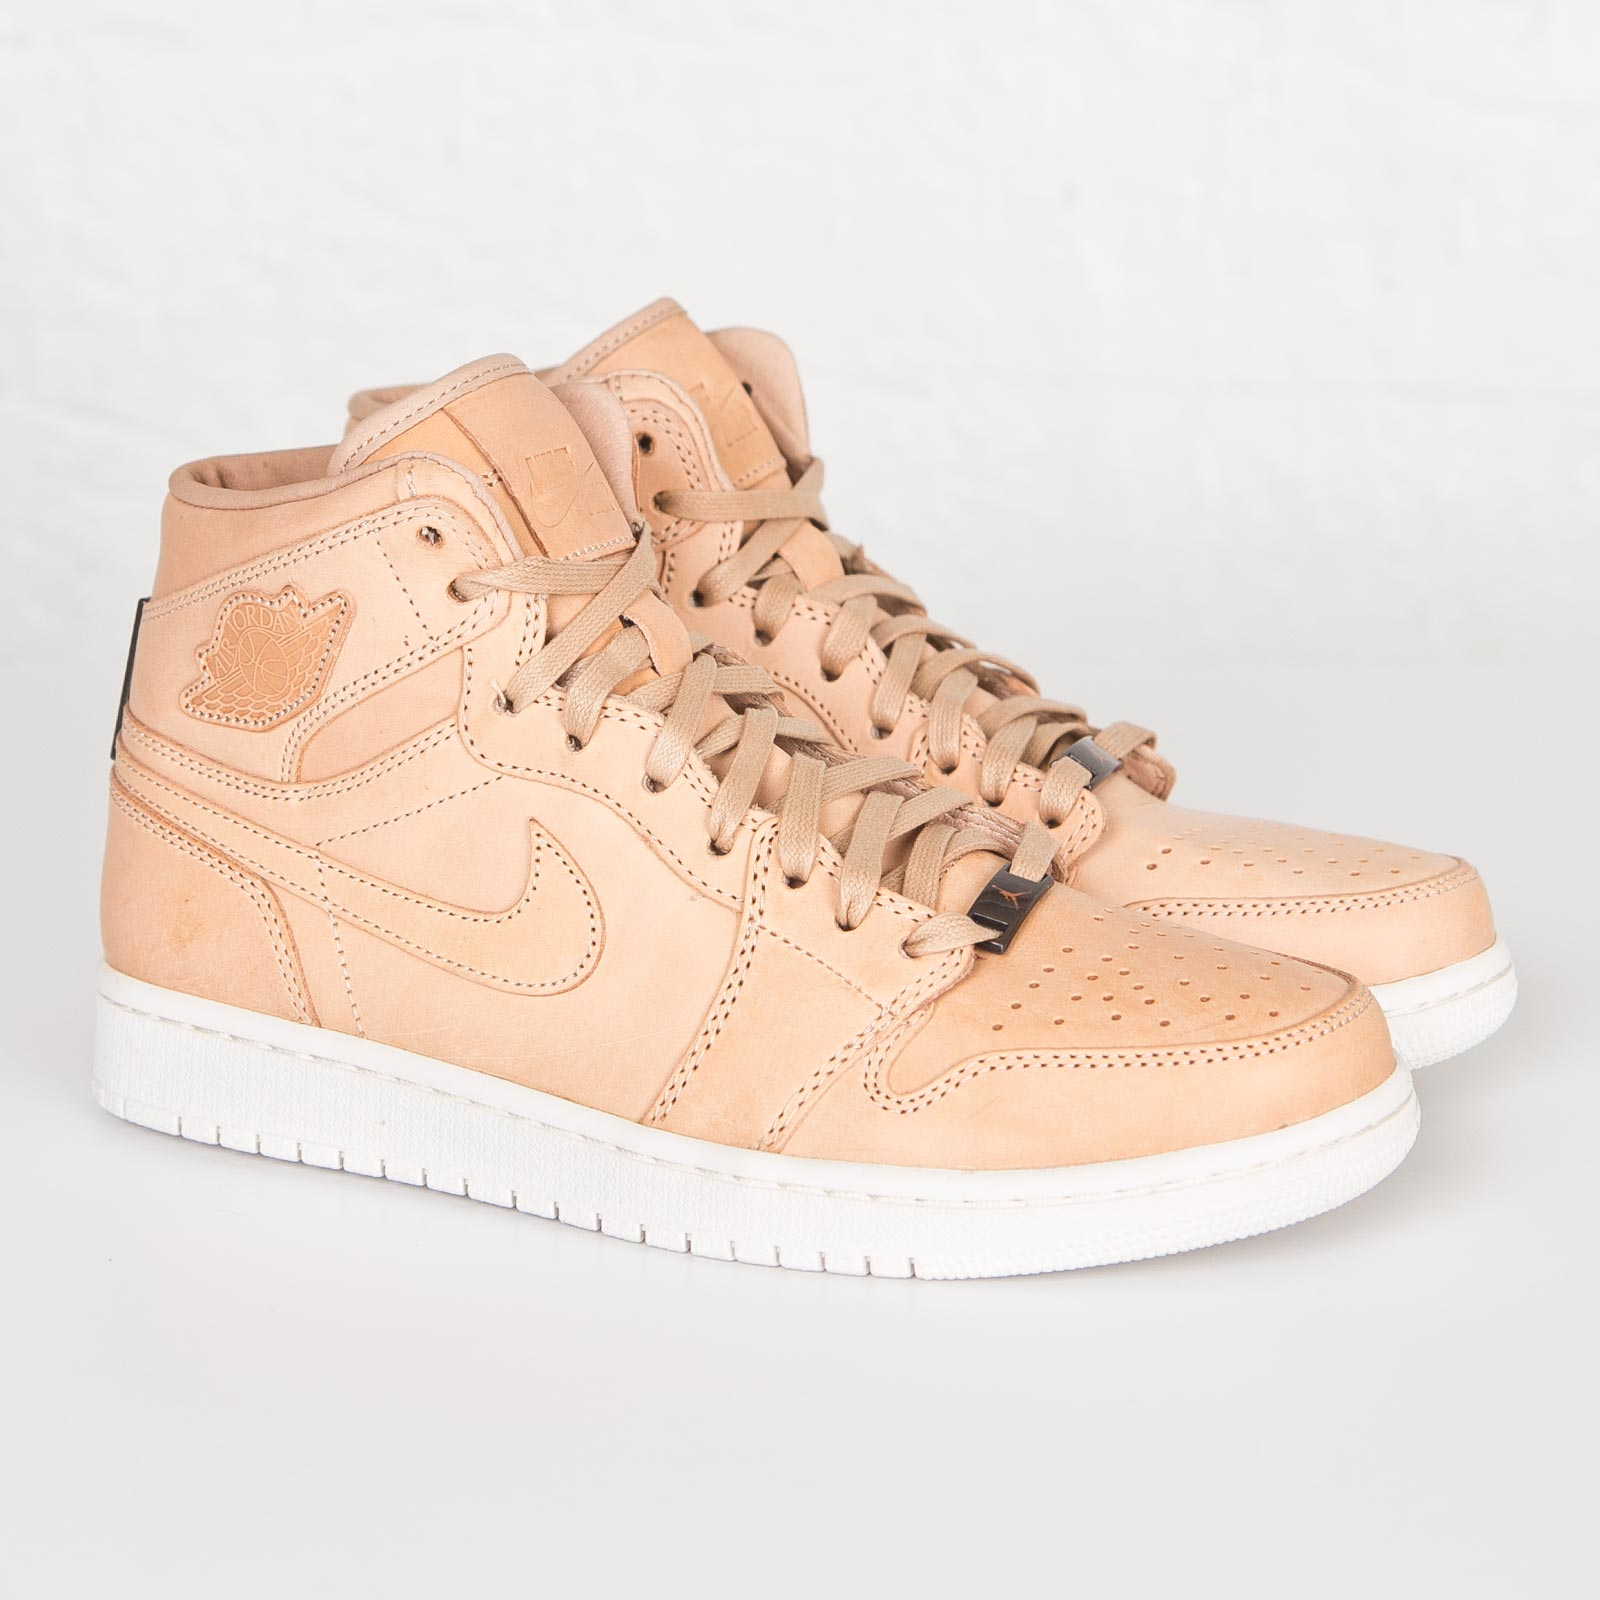 nike herren air jordan 1 pinnacle Turnschuhe